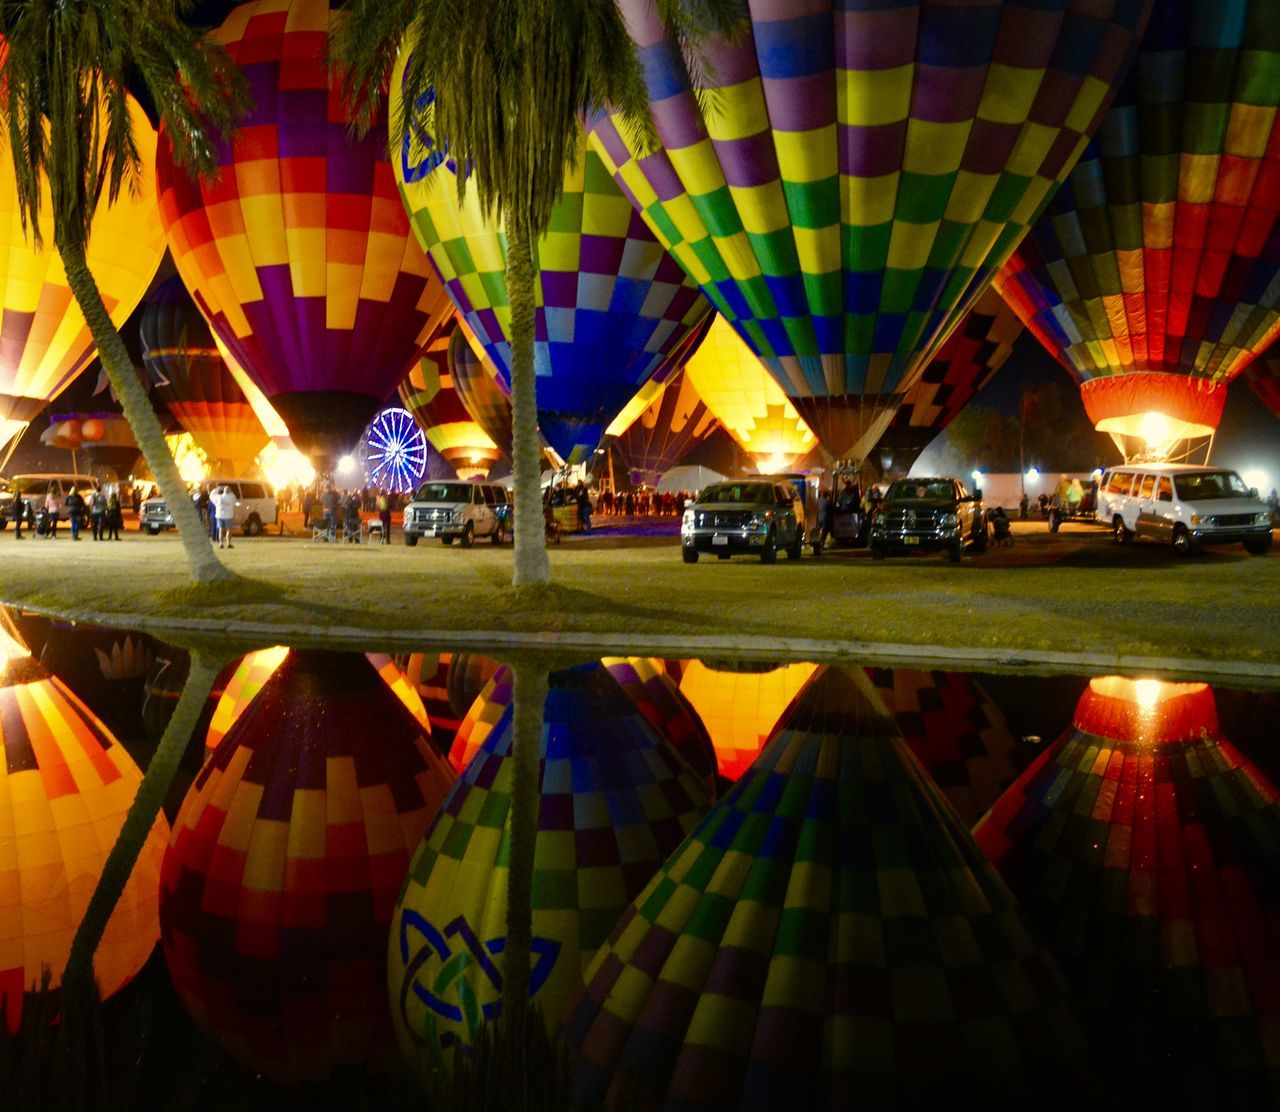 Hot air balloon festival Arizona Ballooning Festival Celebration Hot Air Balloons Illuminated Multi Colored Night Outdoors Reflection